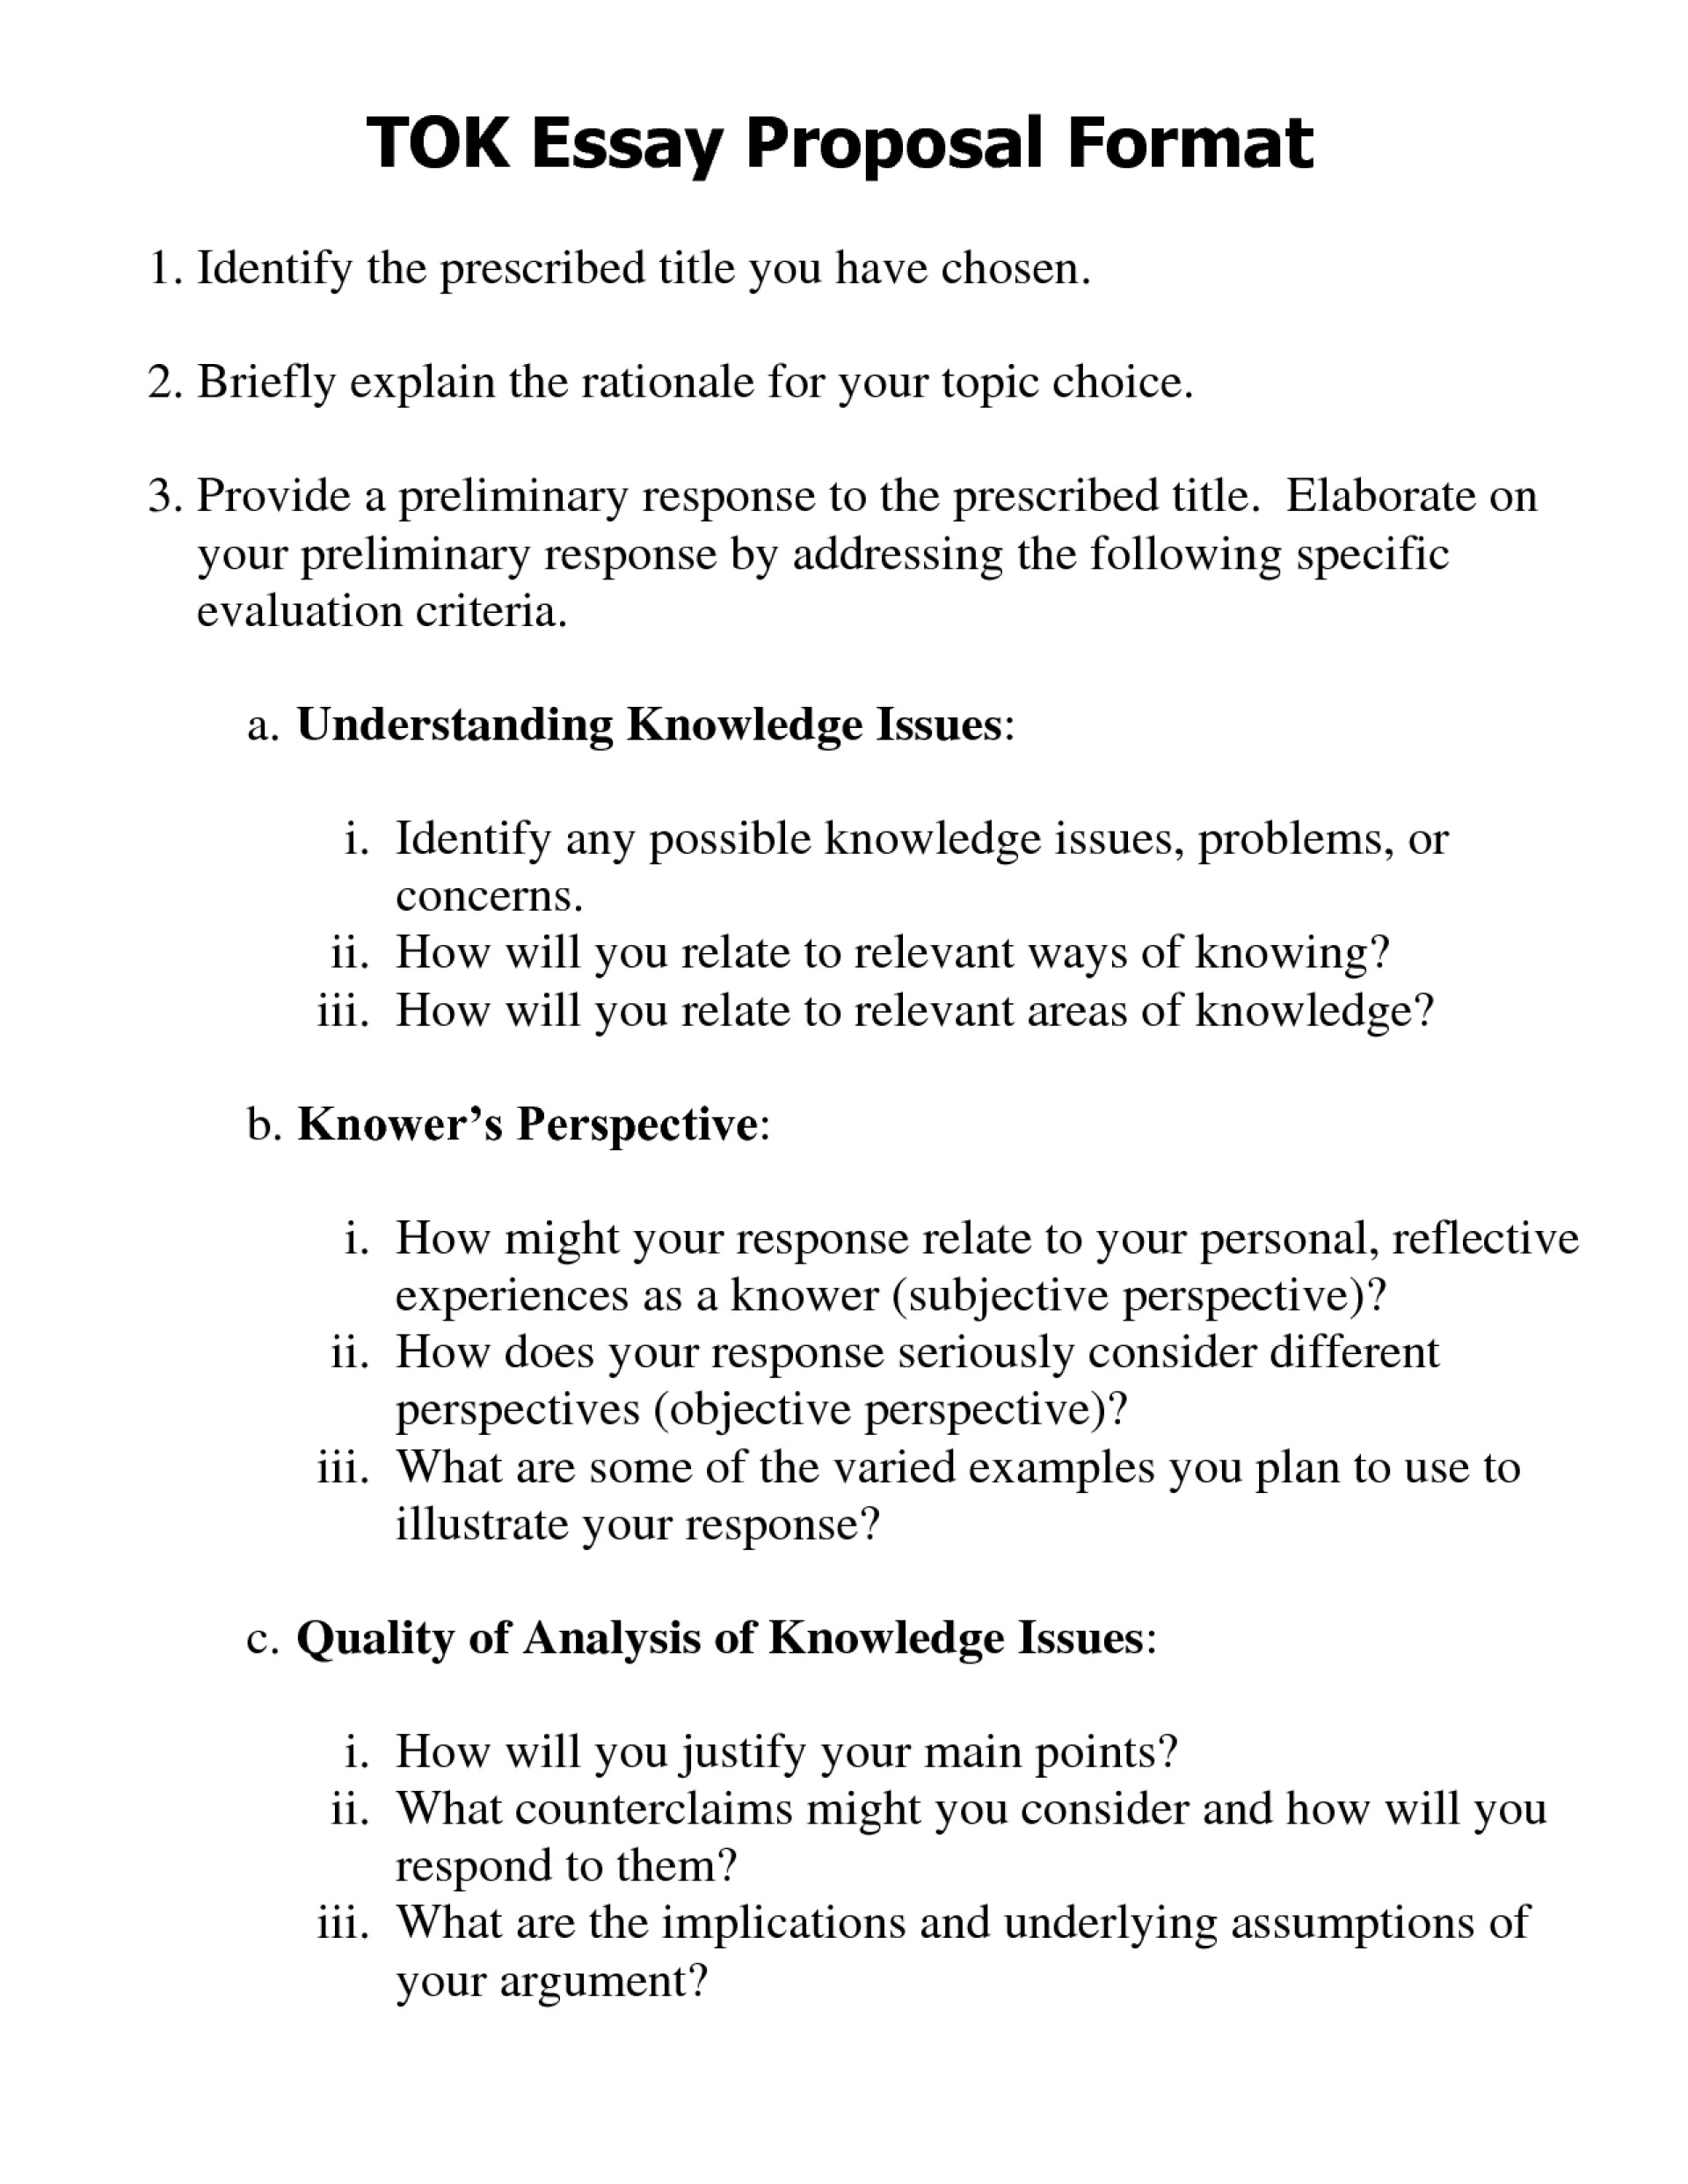 001 Olxkktmp0l Essay Example Proposal Outstanding Outline Argument Research 1920